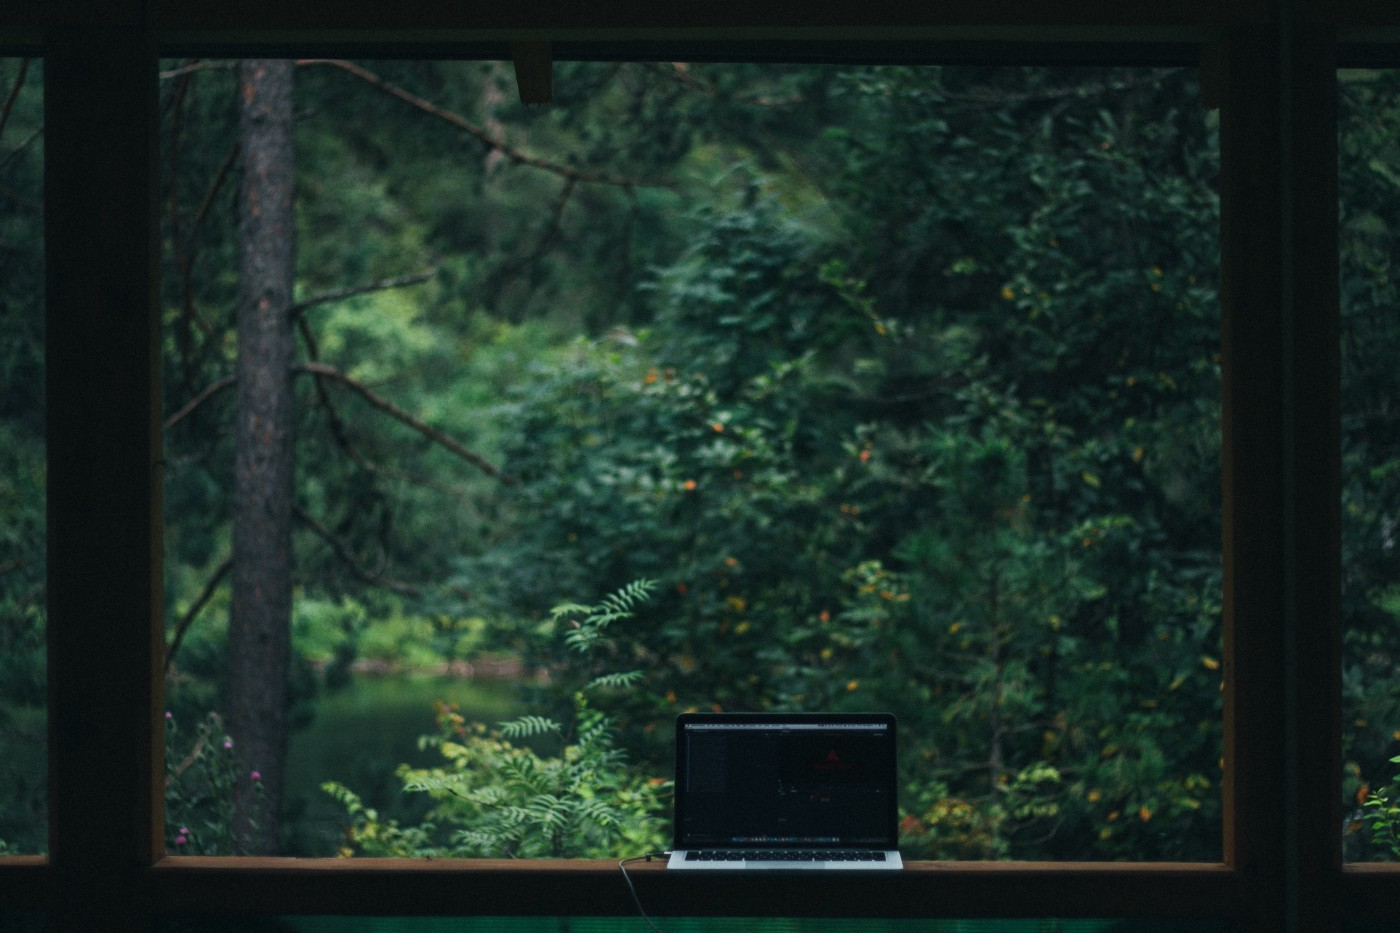 Open laptop by a window overseeing some greenery.